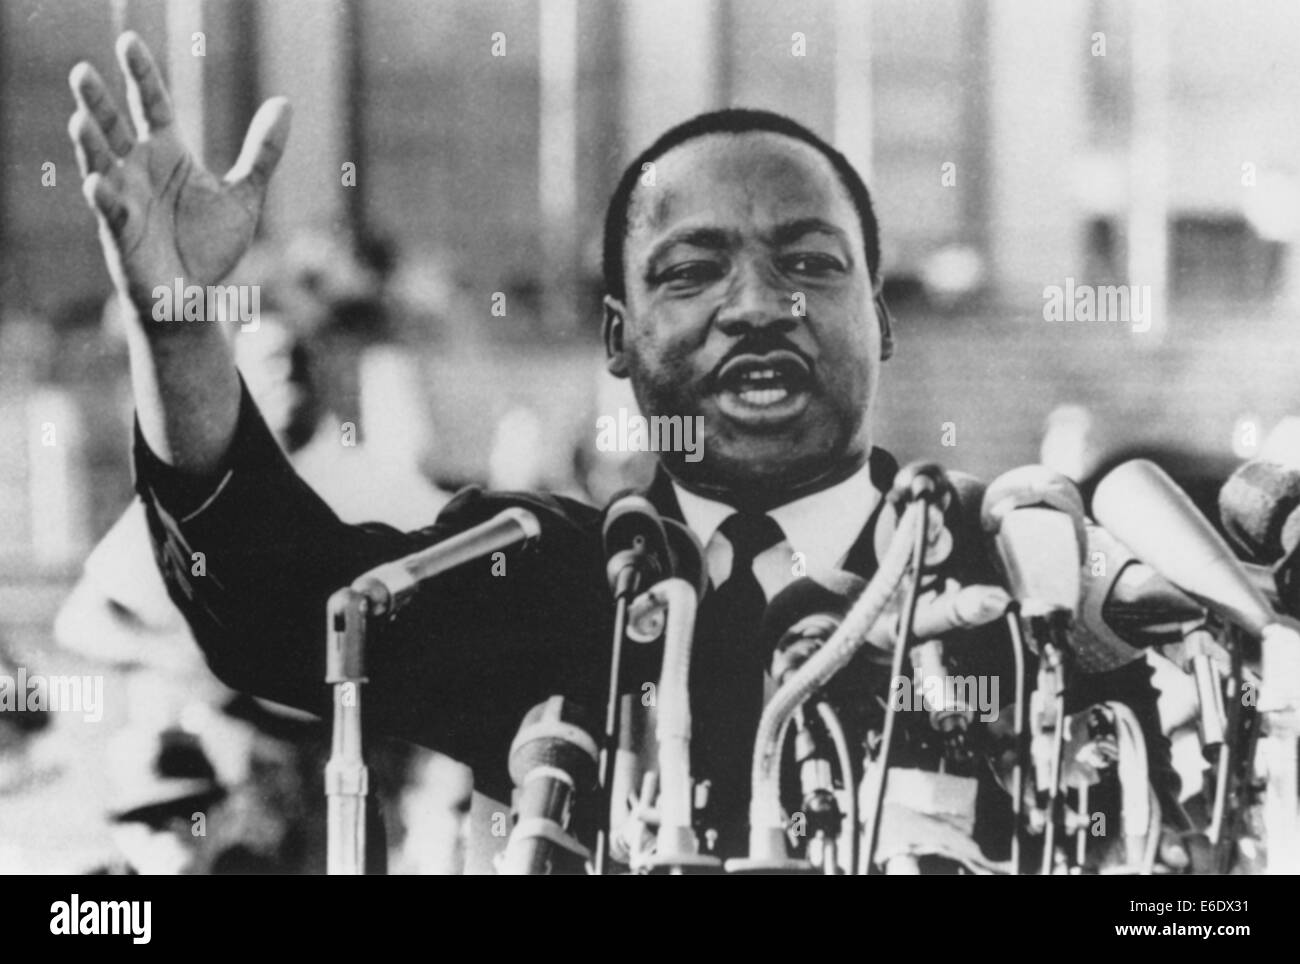 Martin Luther King, Jr., Close-Up During Speech, circa 1960's - Stock Image